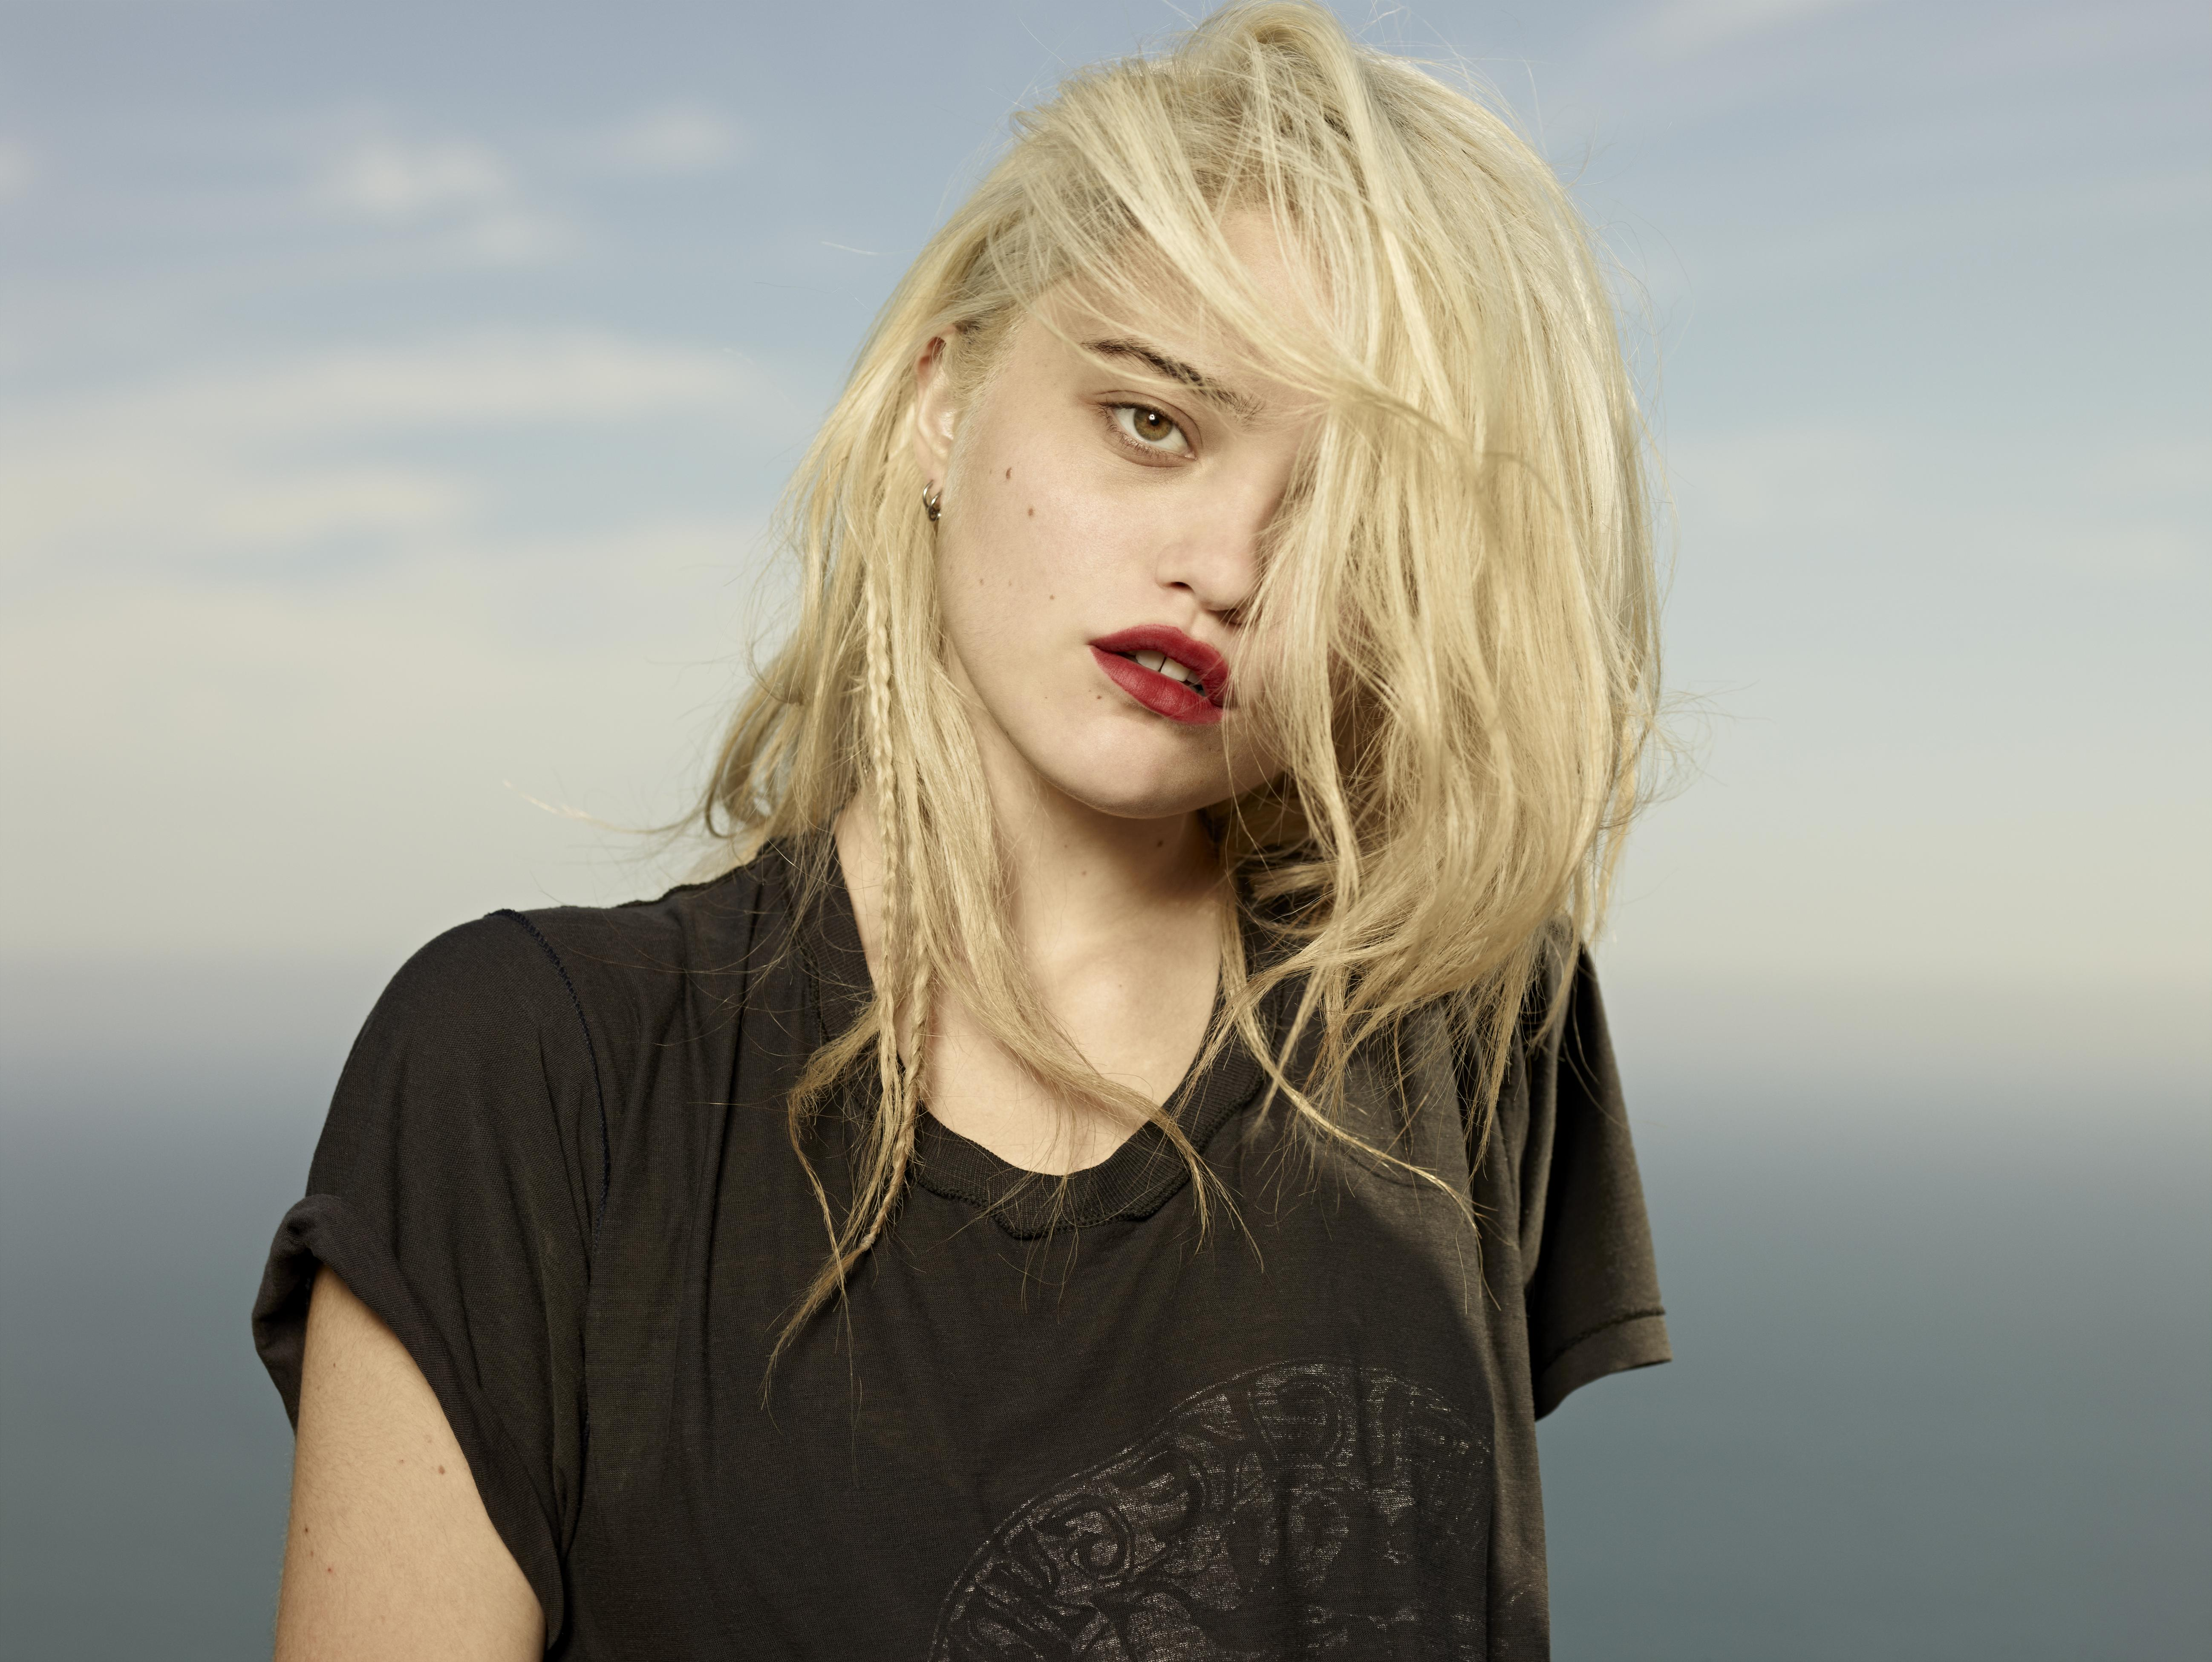 Sky Ferreira Backgrounds on Wallpapers Vista